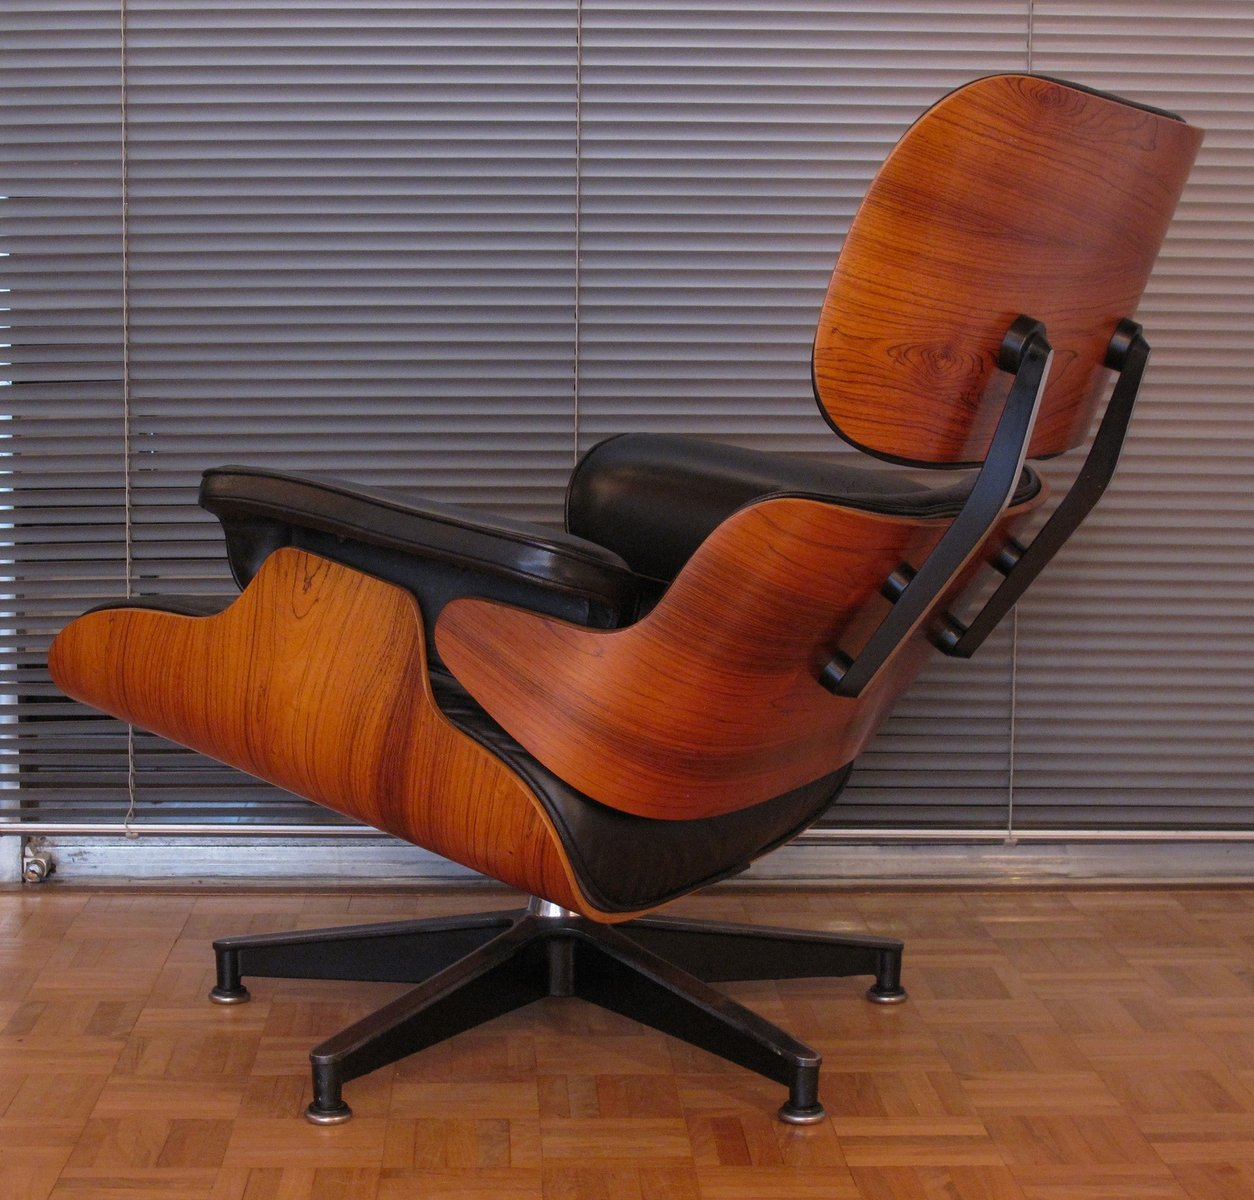 Superb Vintage Black Leather Rosewood Eames Lounge Chair For Gamerscity Chair Design For Home Gamerscityorg